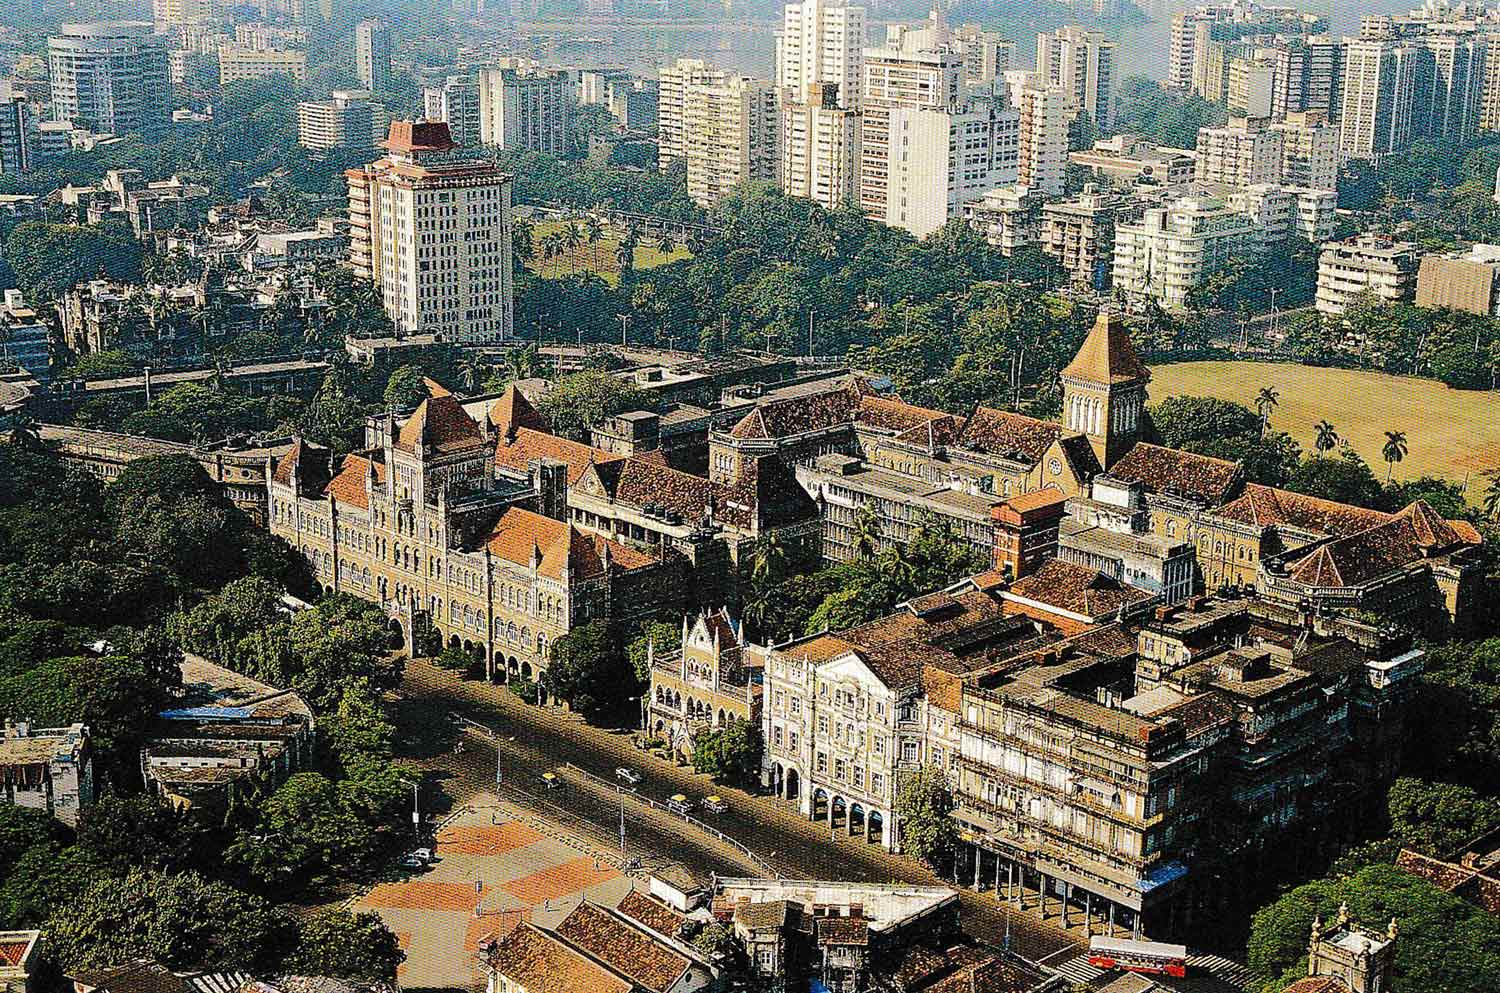 Cluster of 19th Century Victorian Buildings © Book: Above Bombay, Jehangir Sorabjee